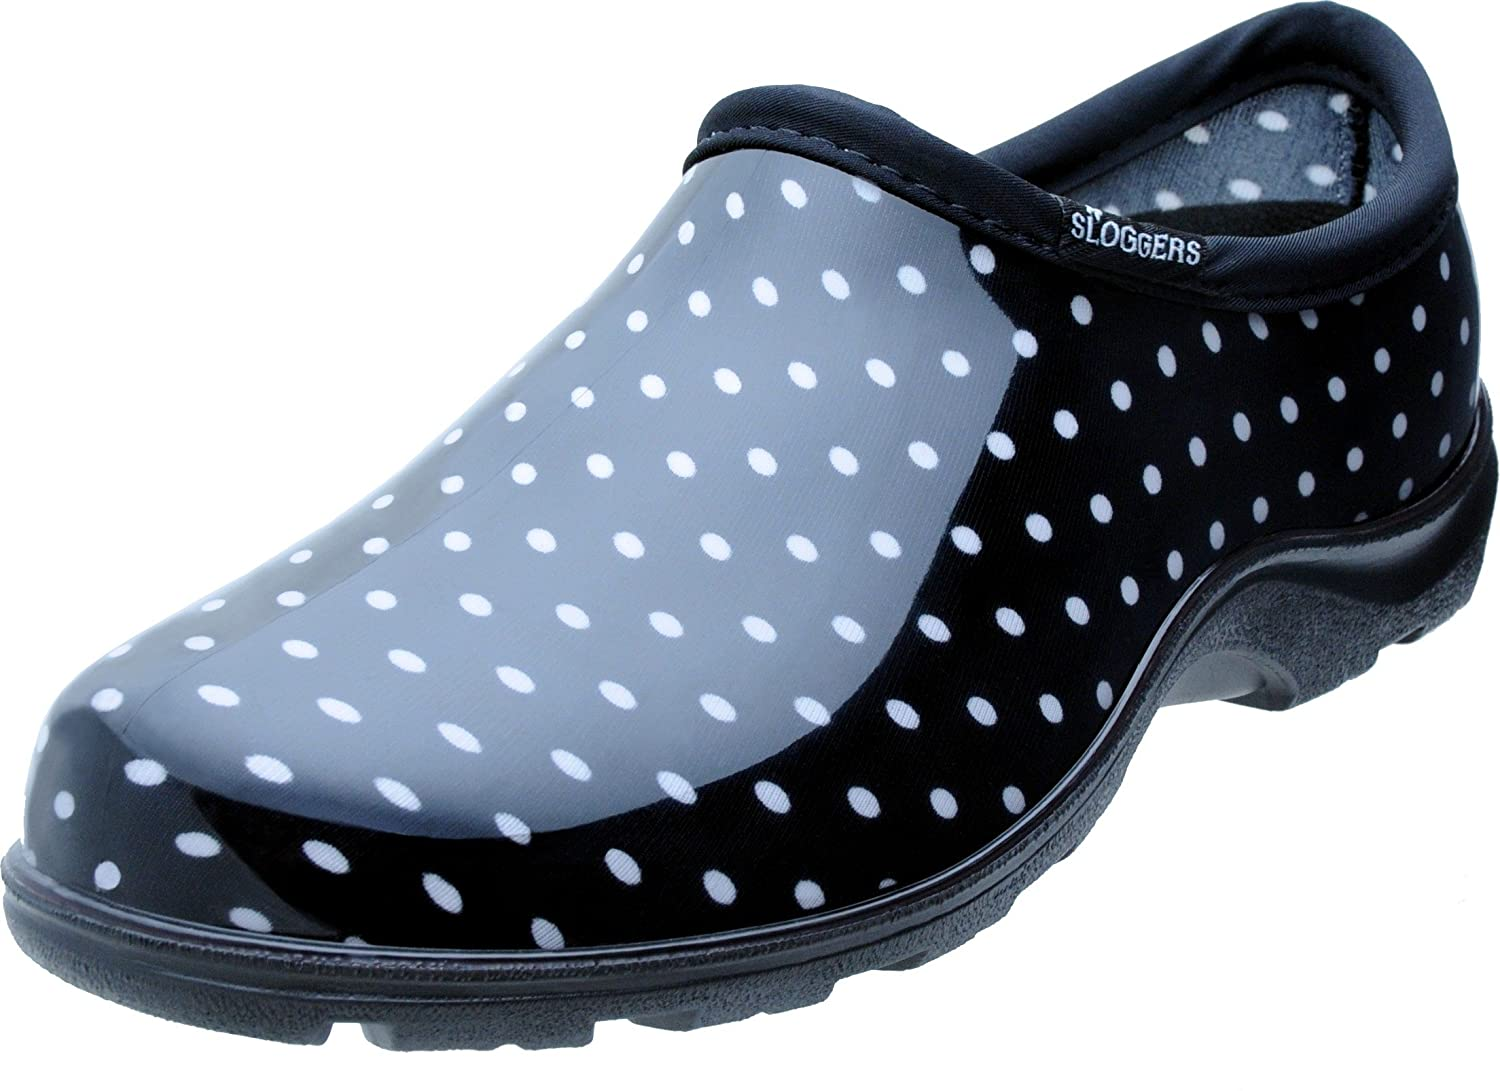 Sloggers 5113BP08 Rain and Garden Shoe with All Day Comfort Insole, Wo's Size 8, Black/White Polka Dot Print